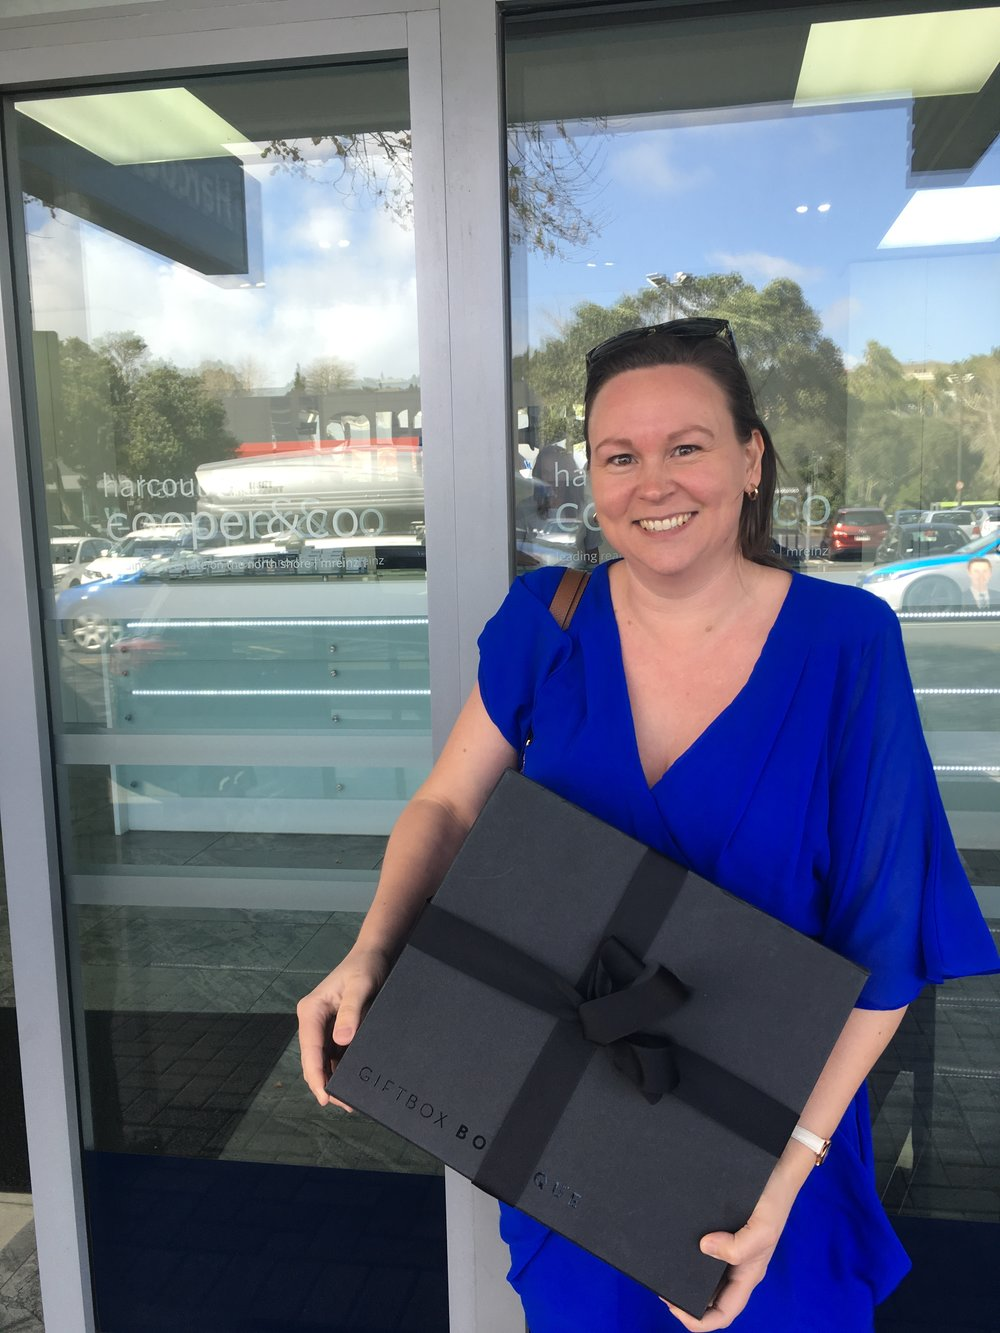 Nicole referred her Mother in Law to us who had a property in Browns Bay. We helped explain the process and guided her along as we went. We were able to get a fantastic result for her and Nicole received a brand new iPhone and treats!